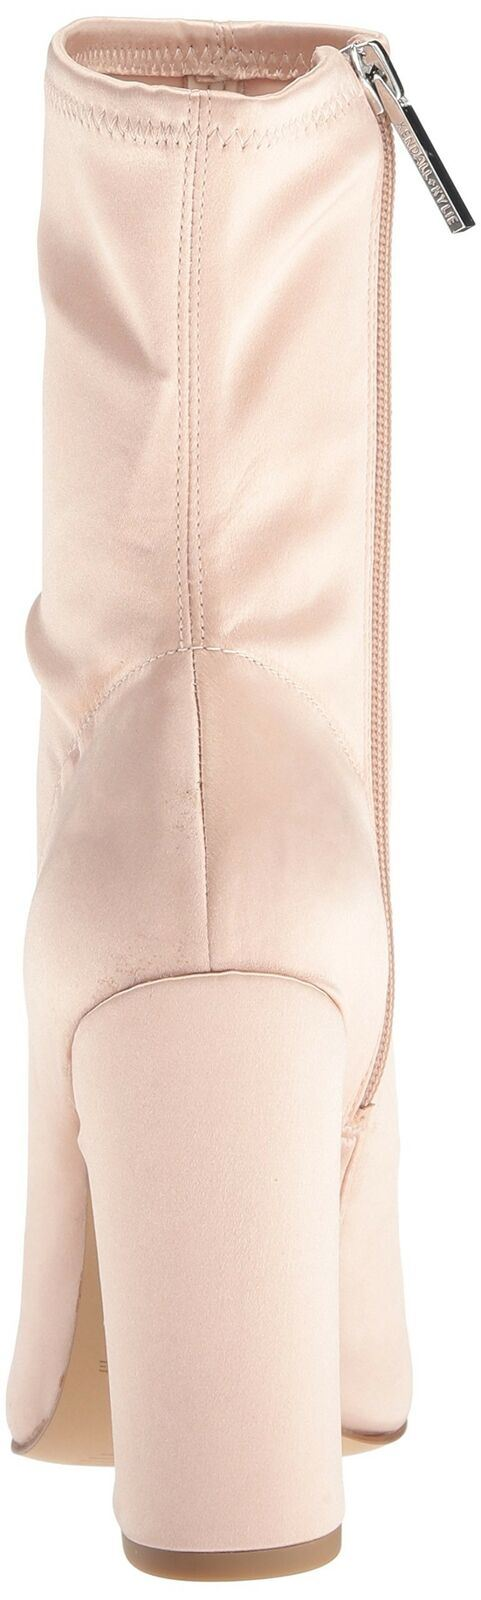 KENDALL + KYLIE Women's Hailey Ankle Boot, Blush, 8 Medium US